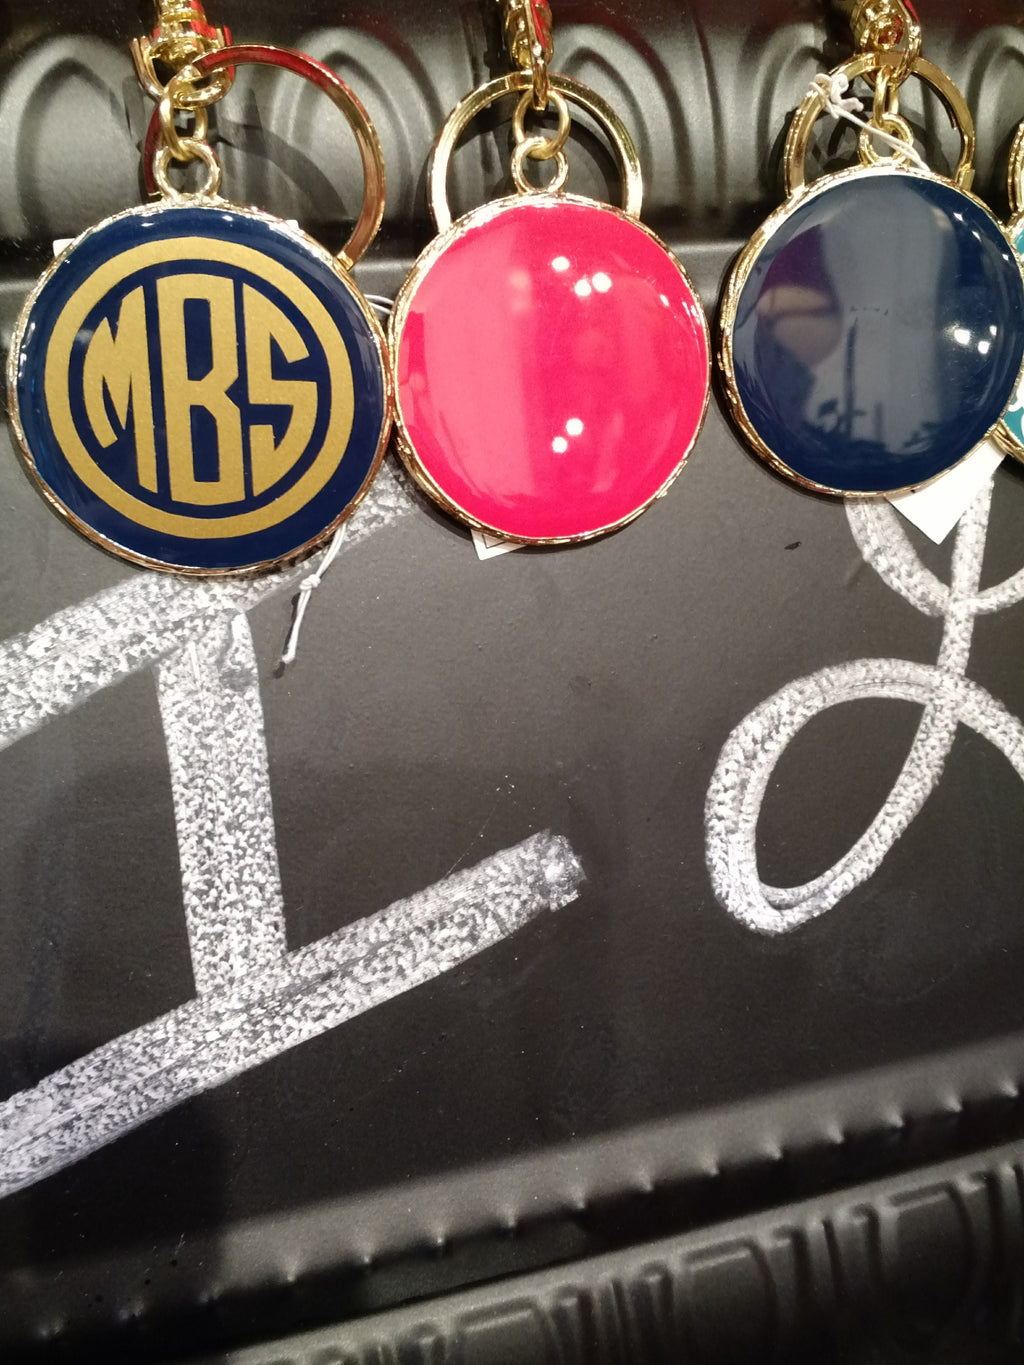 Monogram Key Chain by Mainstreet Collection